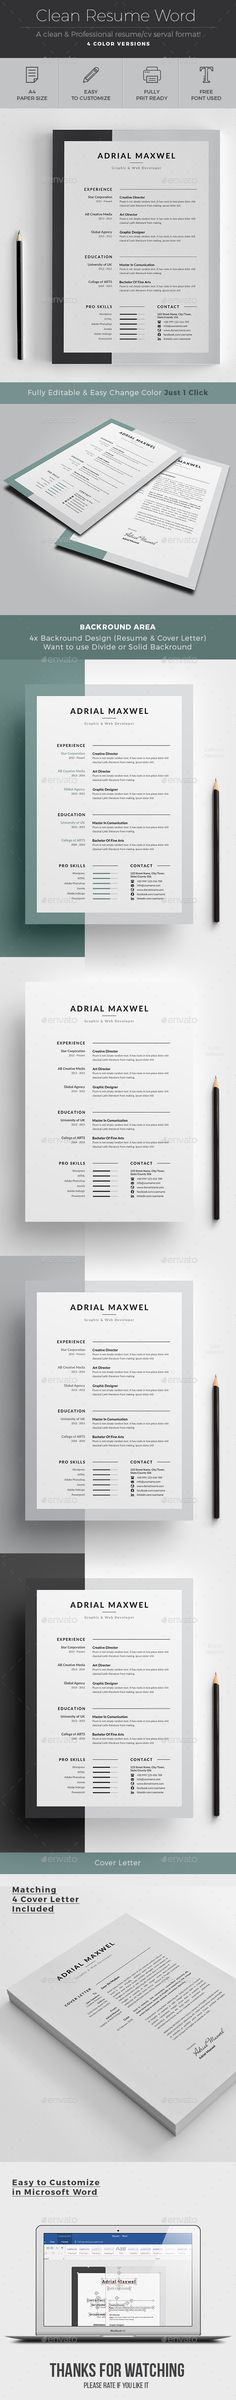 Useful Resume/CV Word Template is a Minimal, bold, Dynamic and Professional Resume Template - with FREE cover letter - Easy to edit and customize  |  Download:  https://graphicriver.net/item/resume/19040727?ref=jpixel55